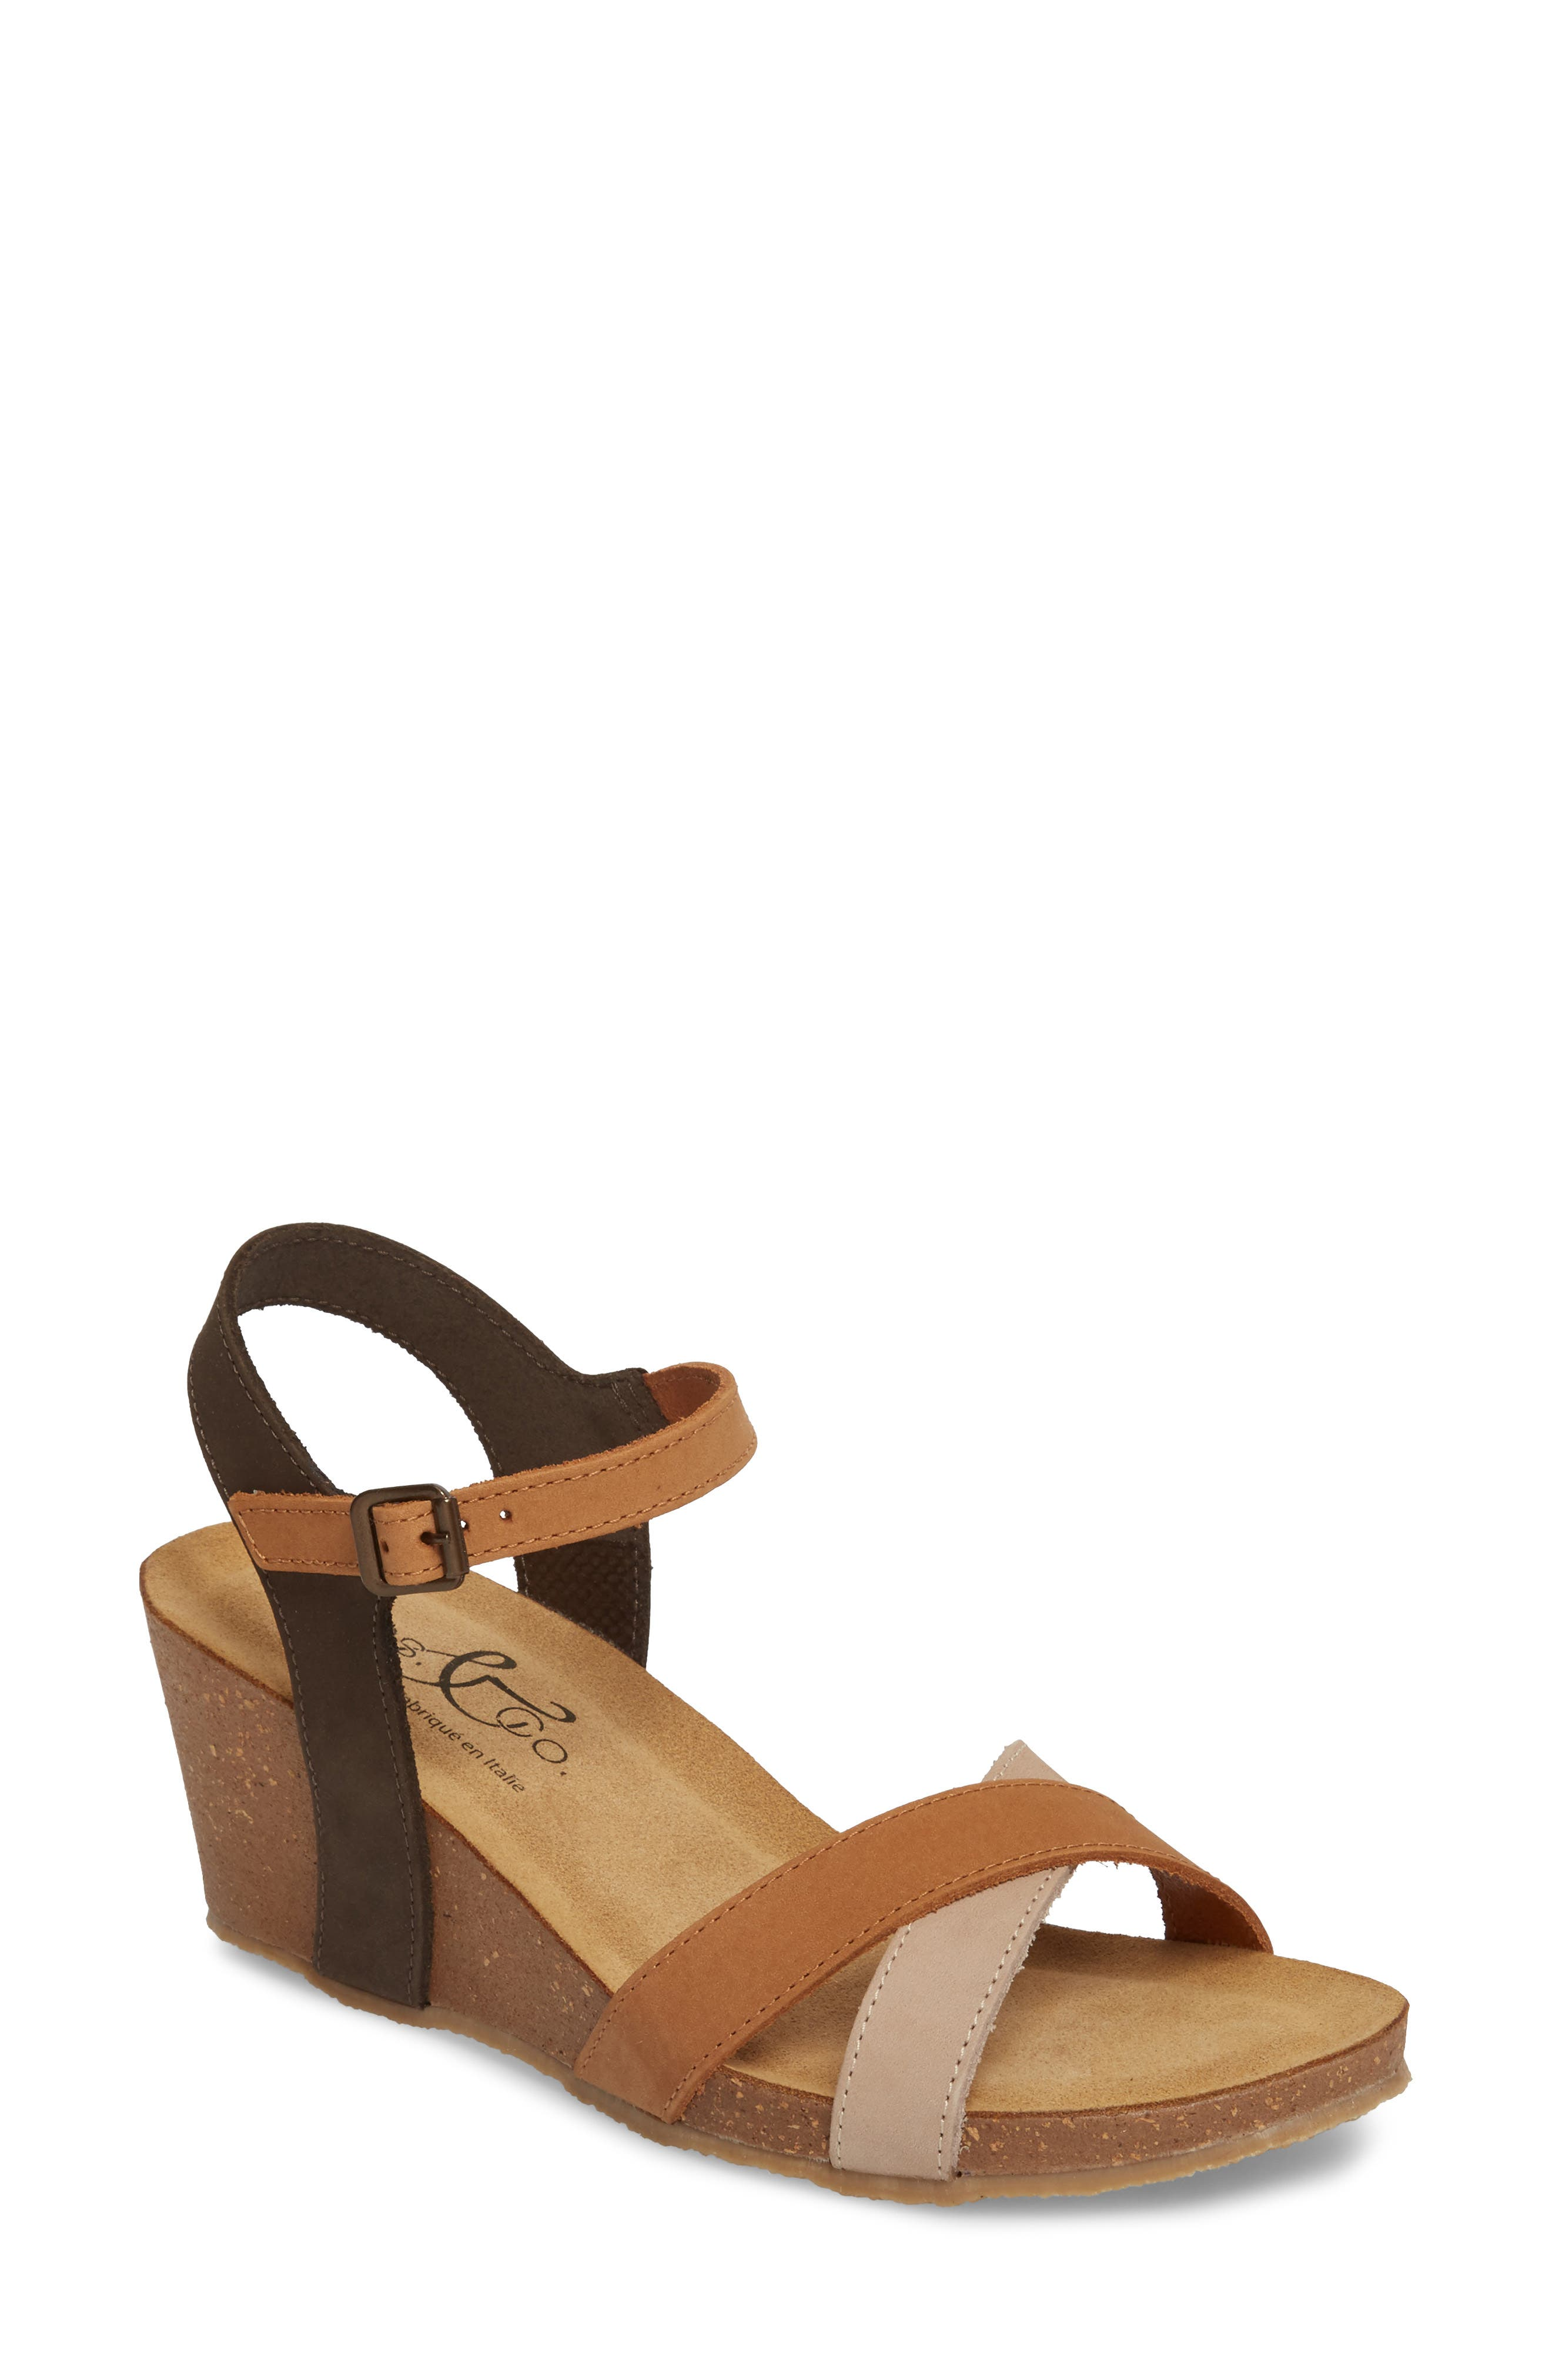 Lucca Wedge Sandal,                         Main,                         color, Multi Cognac Nubuck Leather